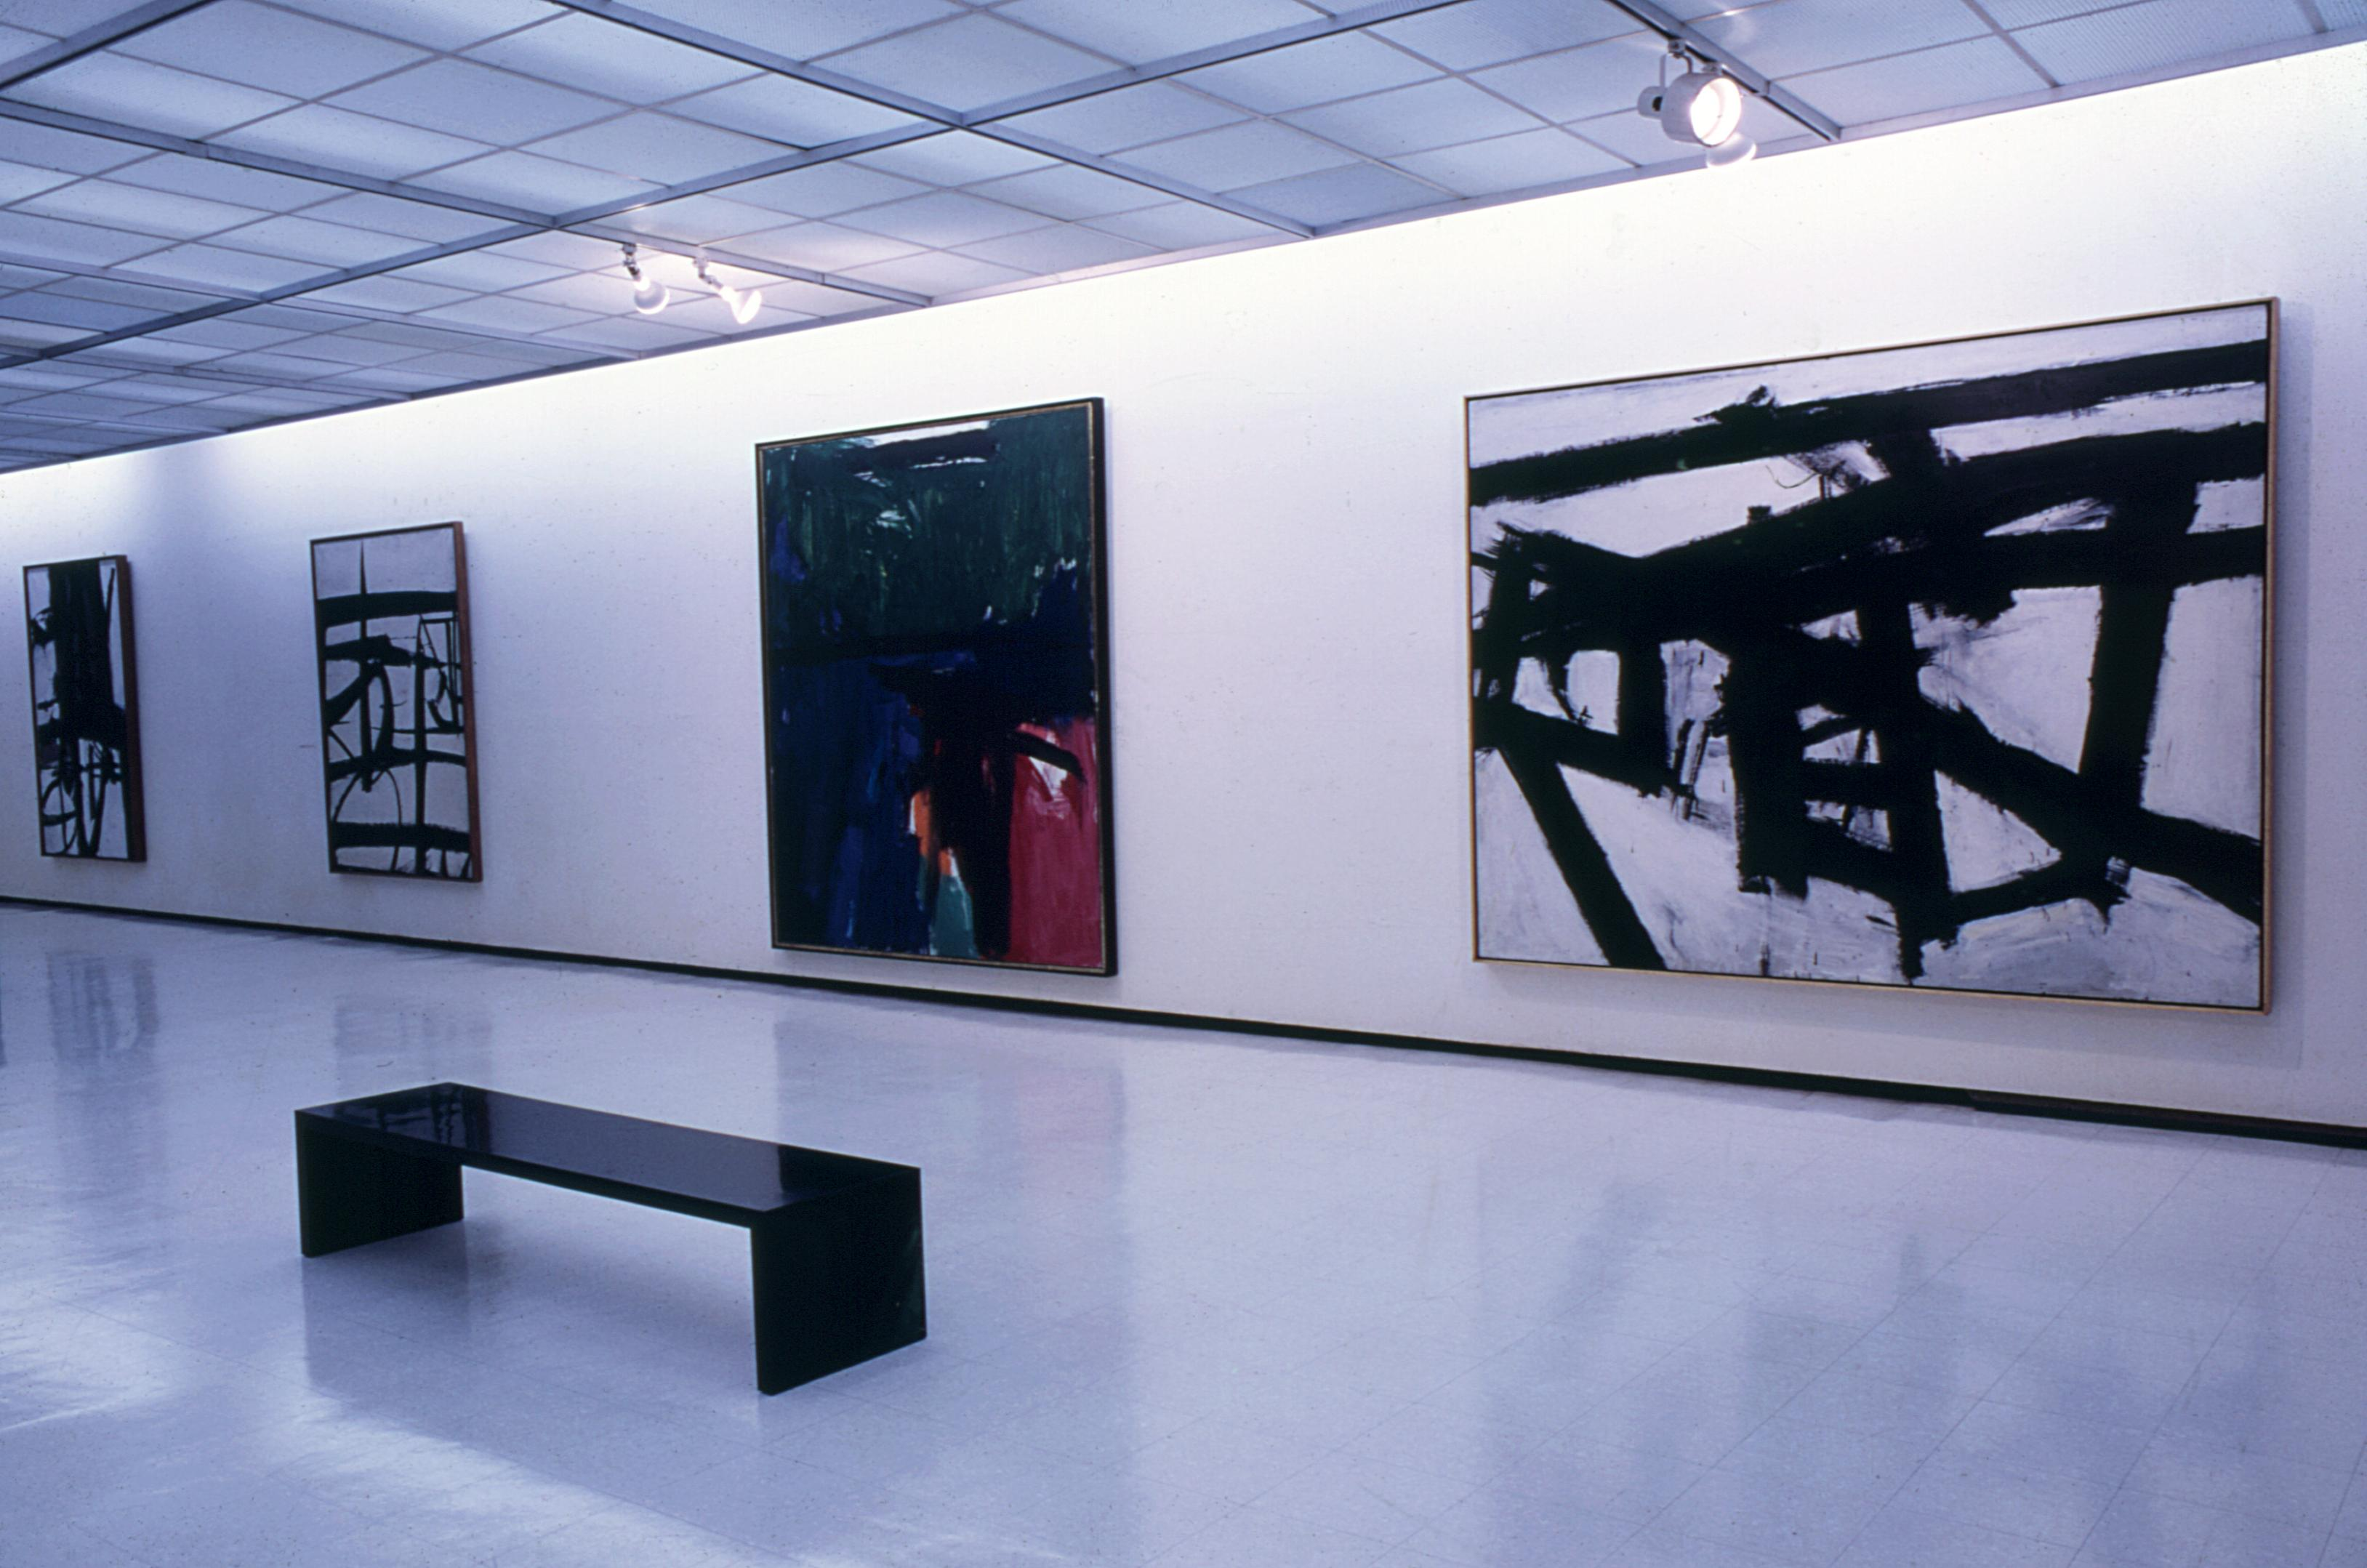 Three black and white and one multicolored paintings hang along a gallery wall.